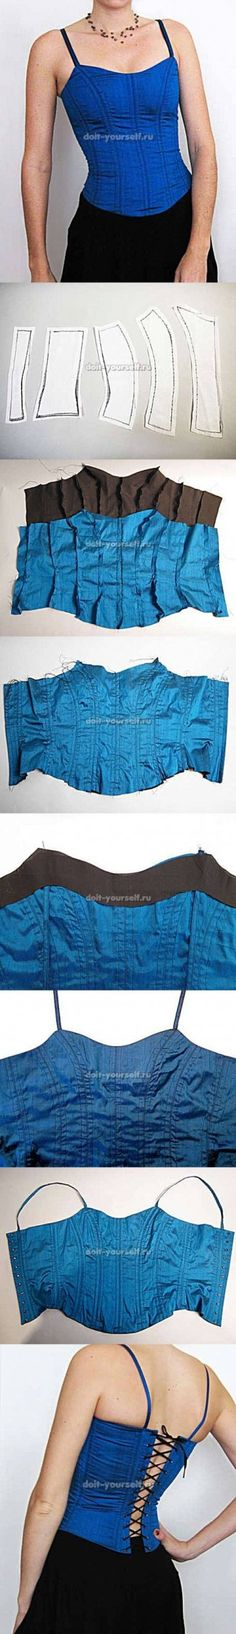 DIY Stylish Corset DIY Projects